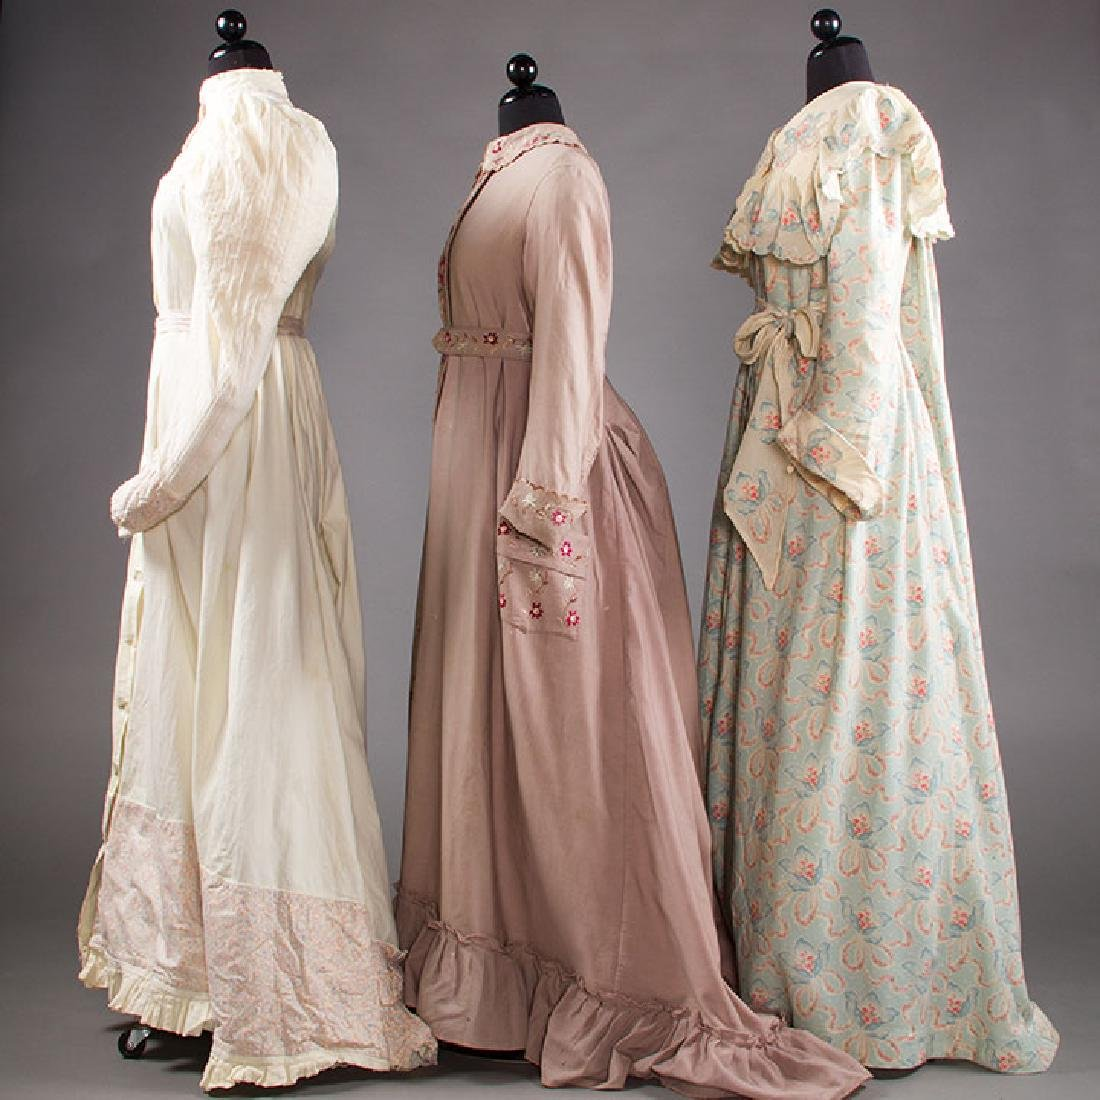 3 LADIES' AT-HOME WRAPPERS, 19TH C - 2